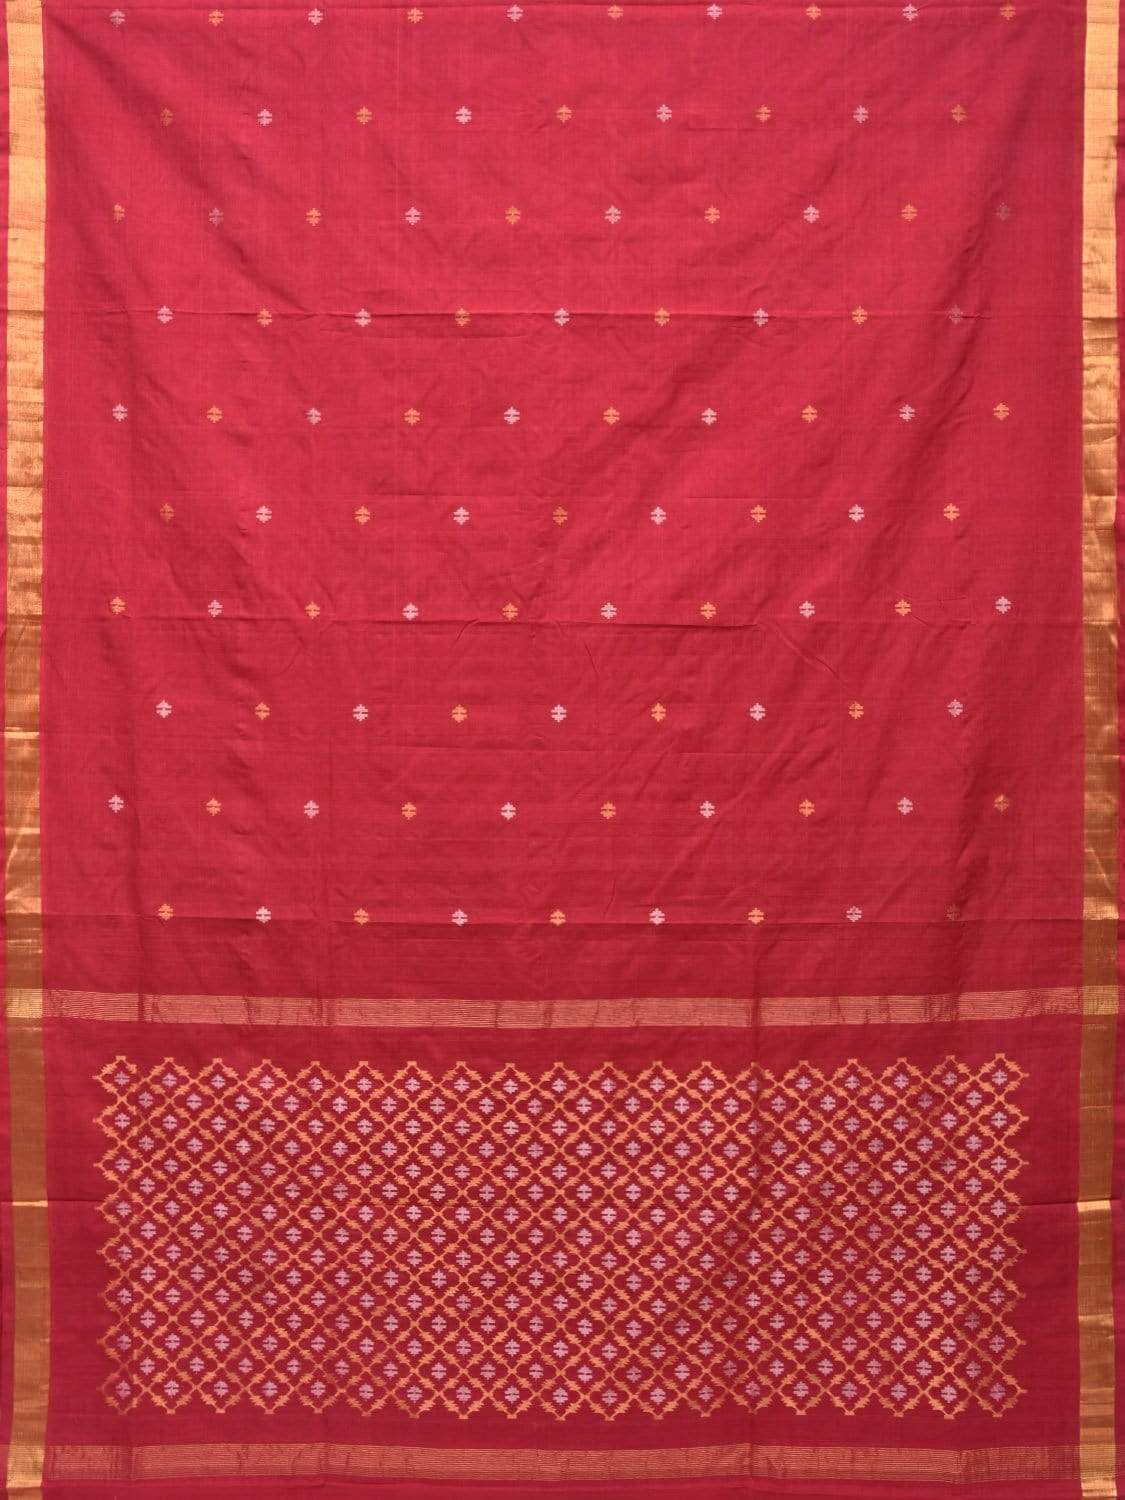 Red Uppada Cotton Handloom Saree with Jamdani Pallu Design No Blouse u1630